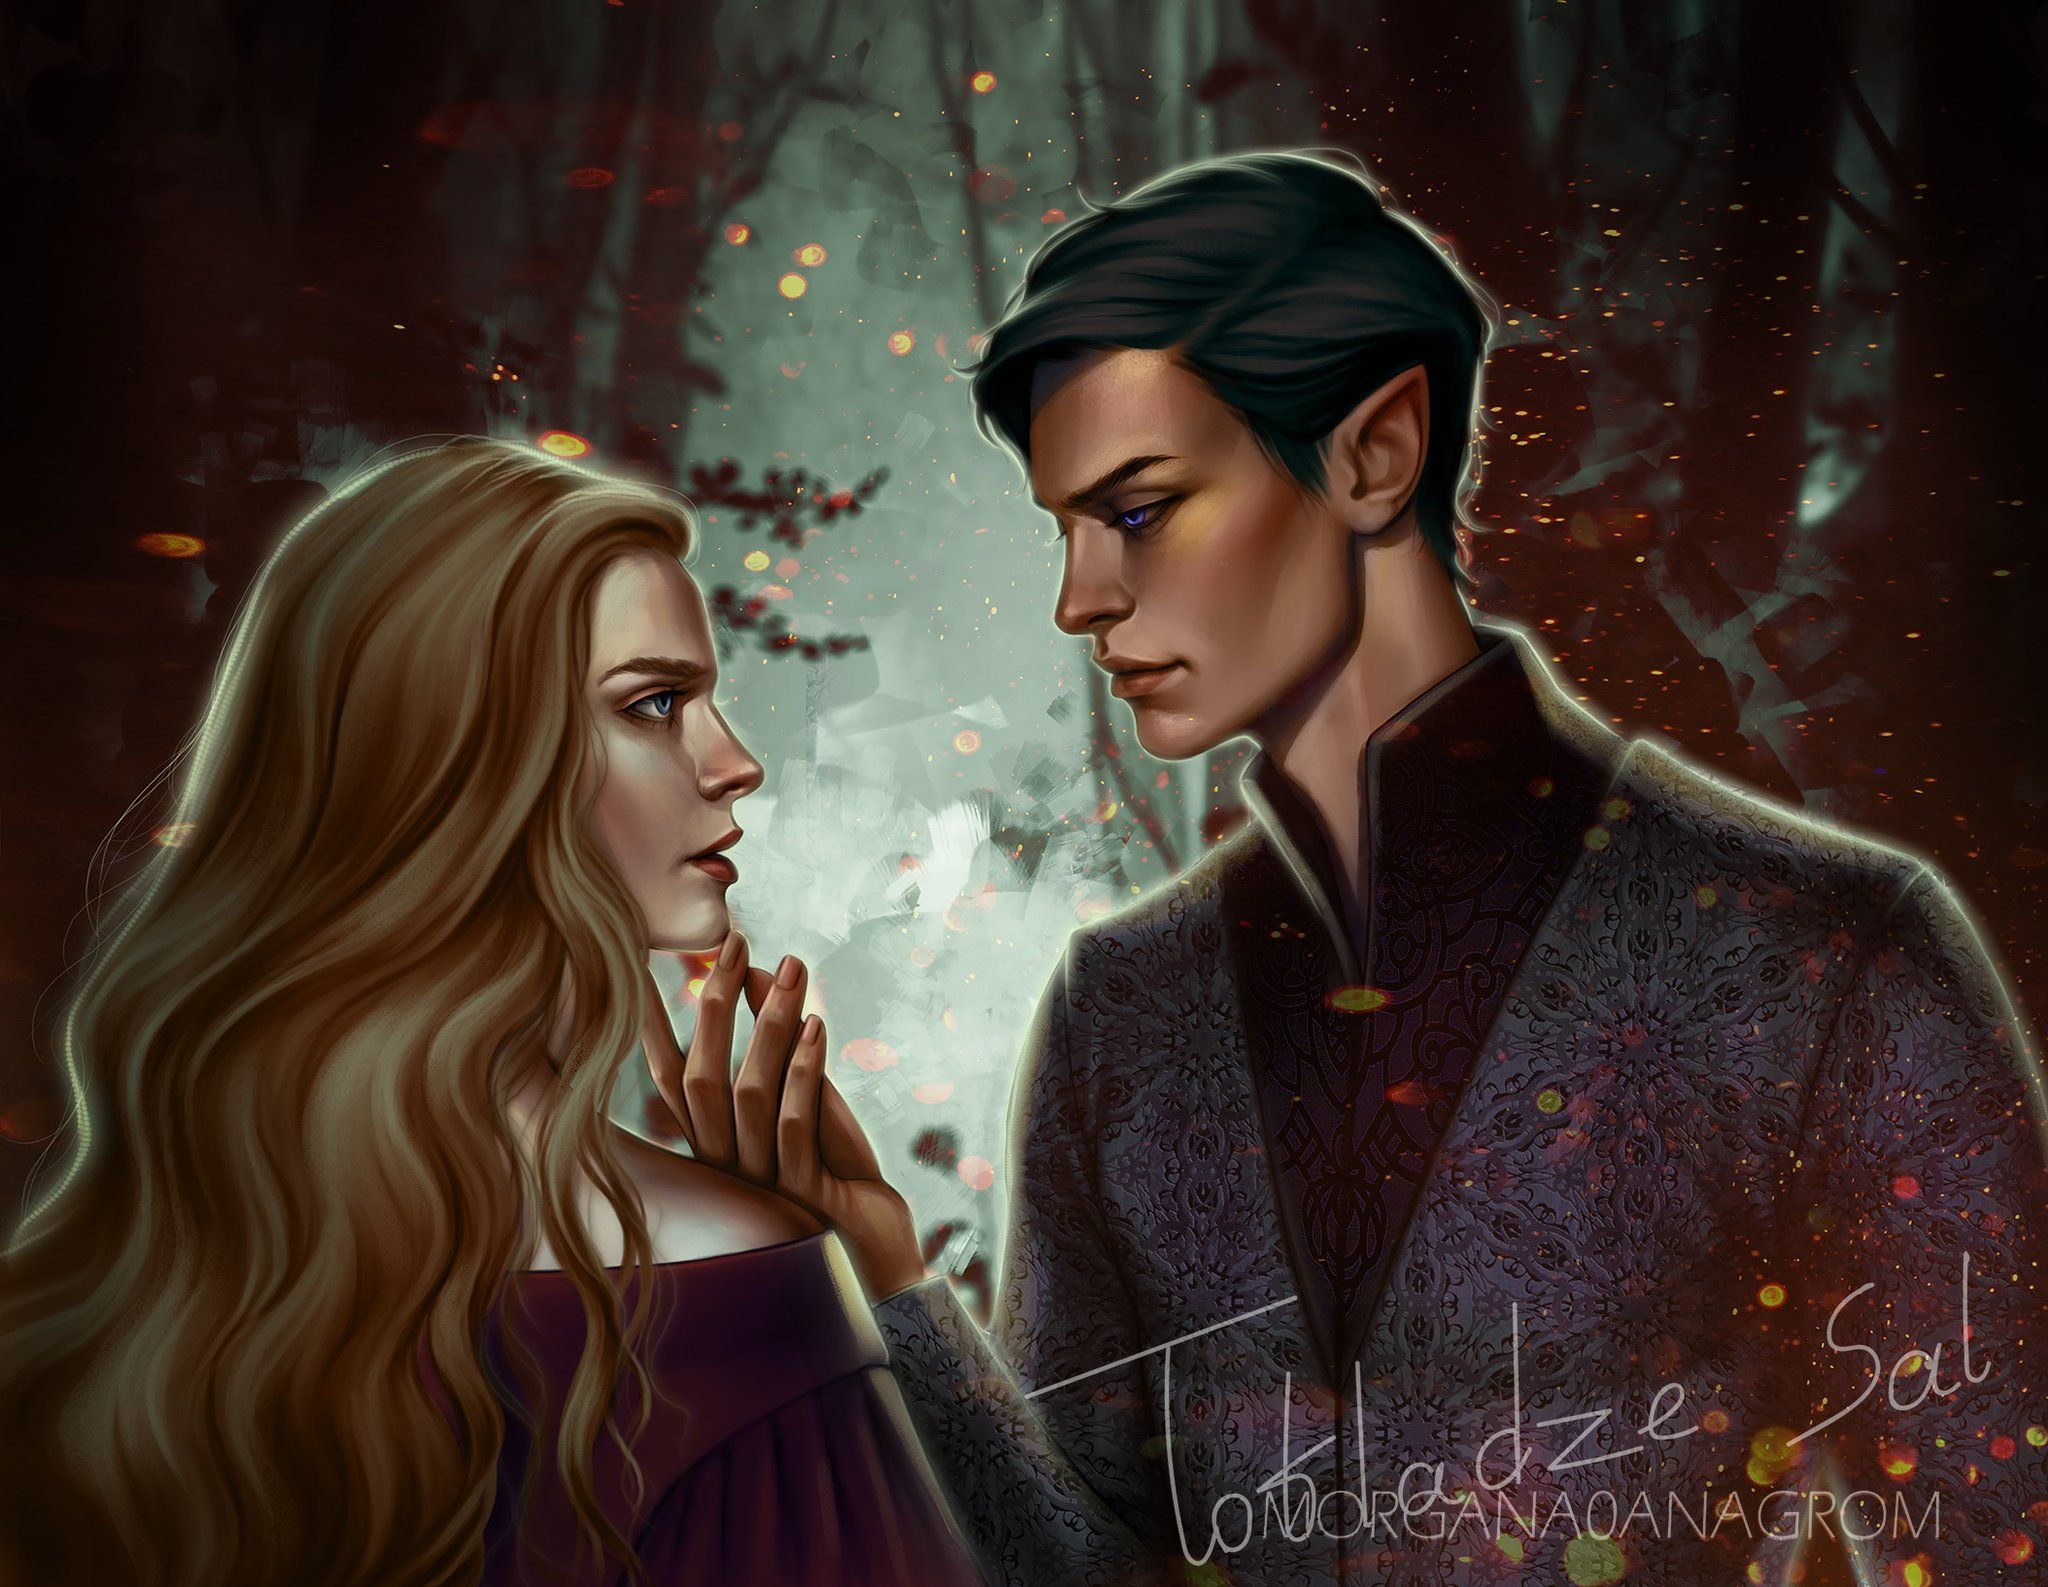 Morgana0anagrom On With Images A Court Of Mist And Fury Feyre